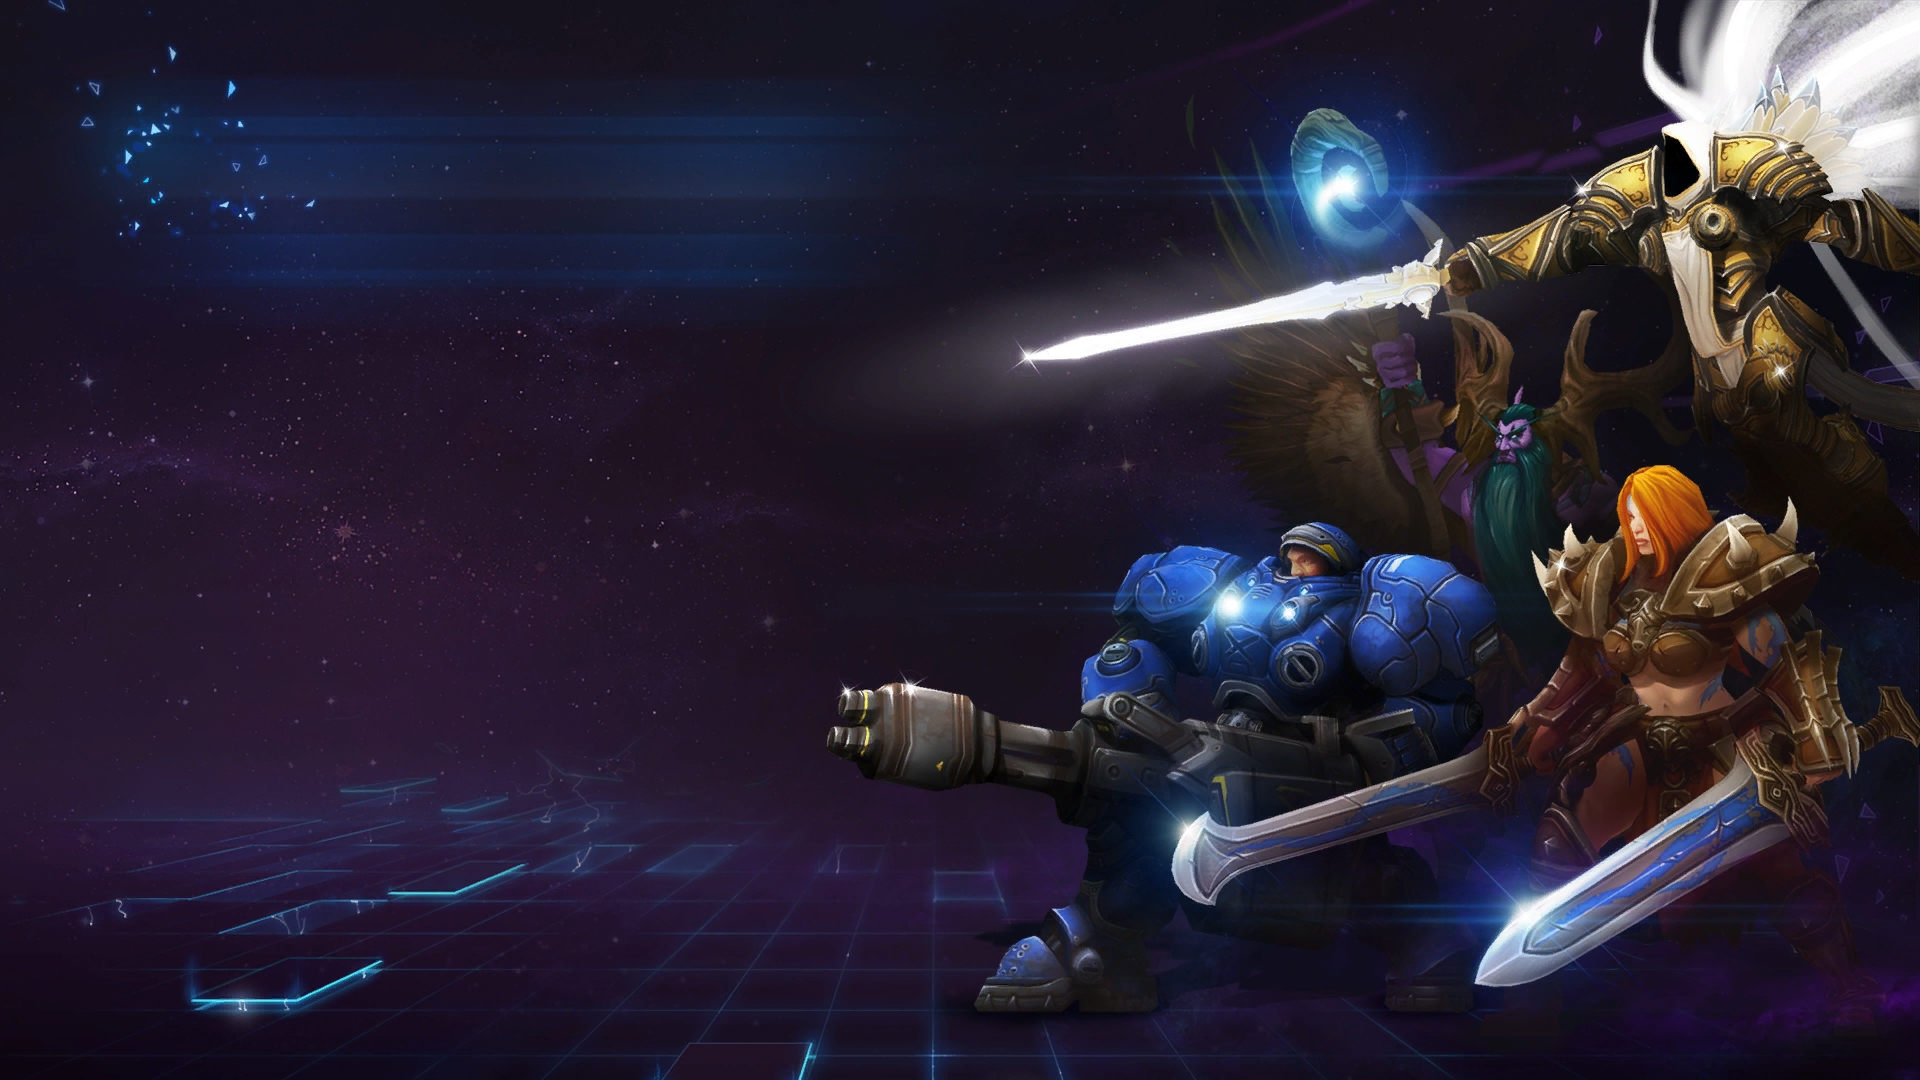 LOAD FILE: HEROES OF THE STORM